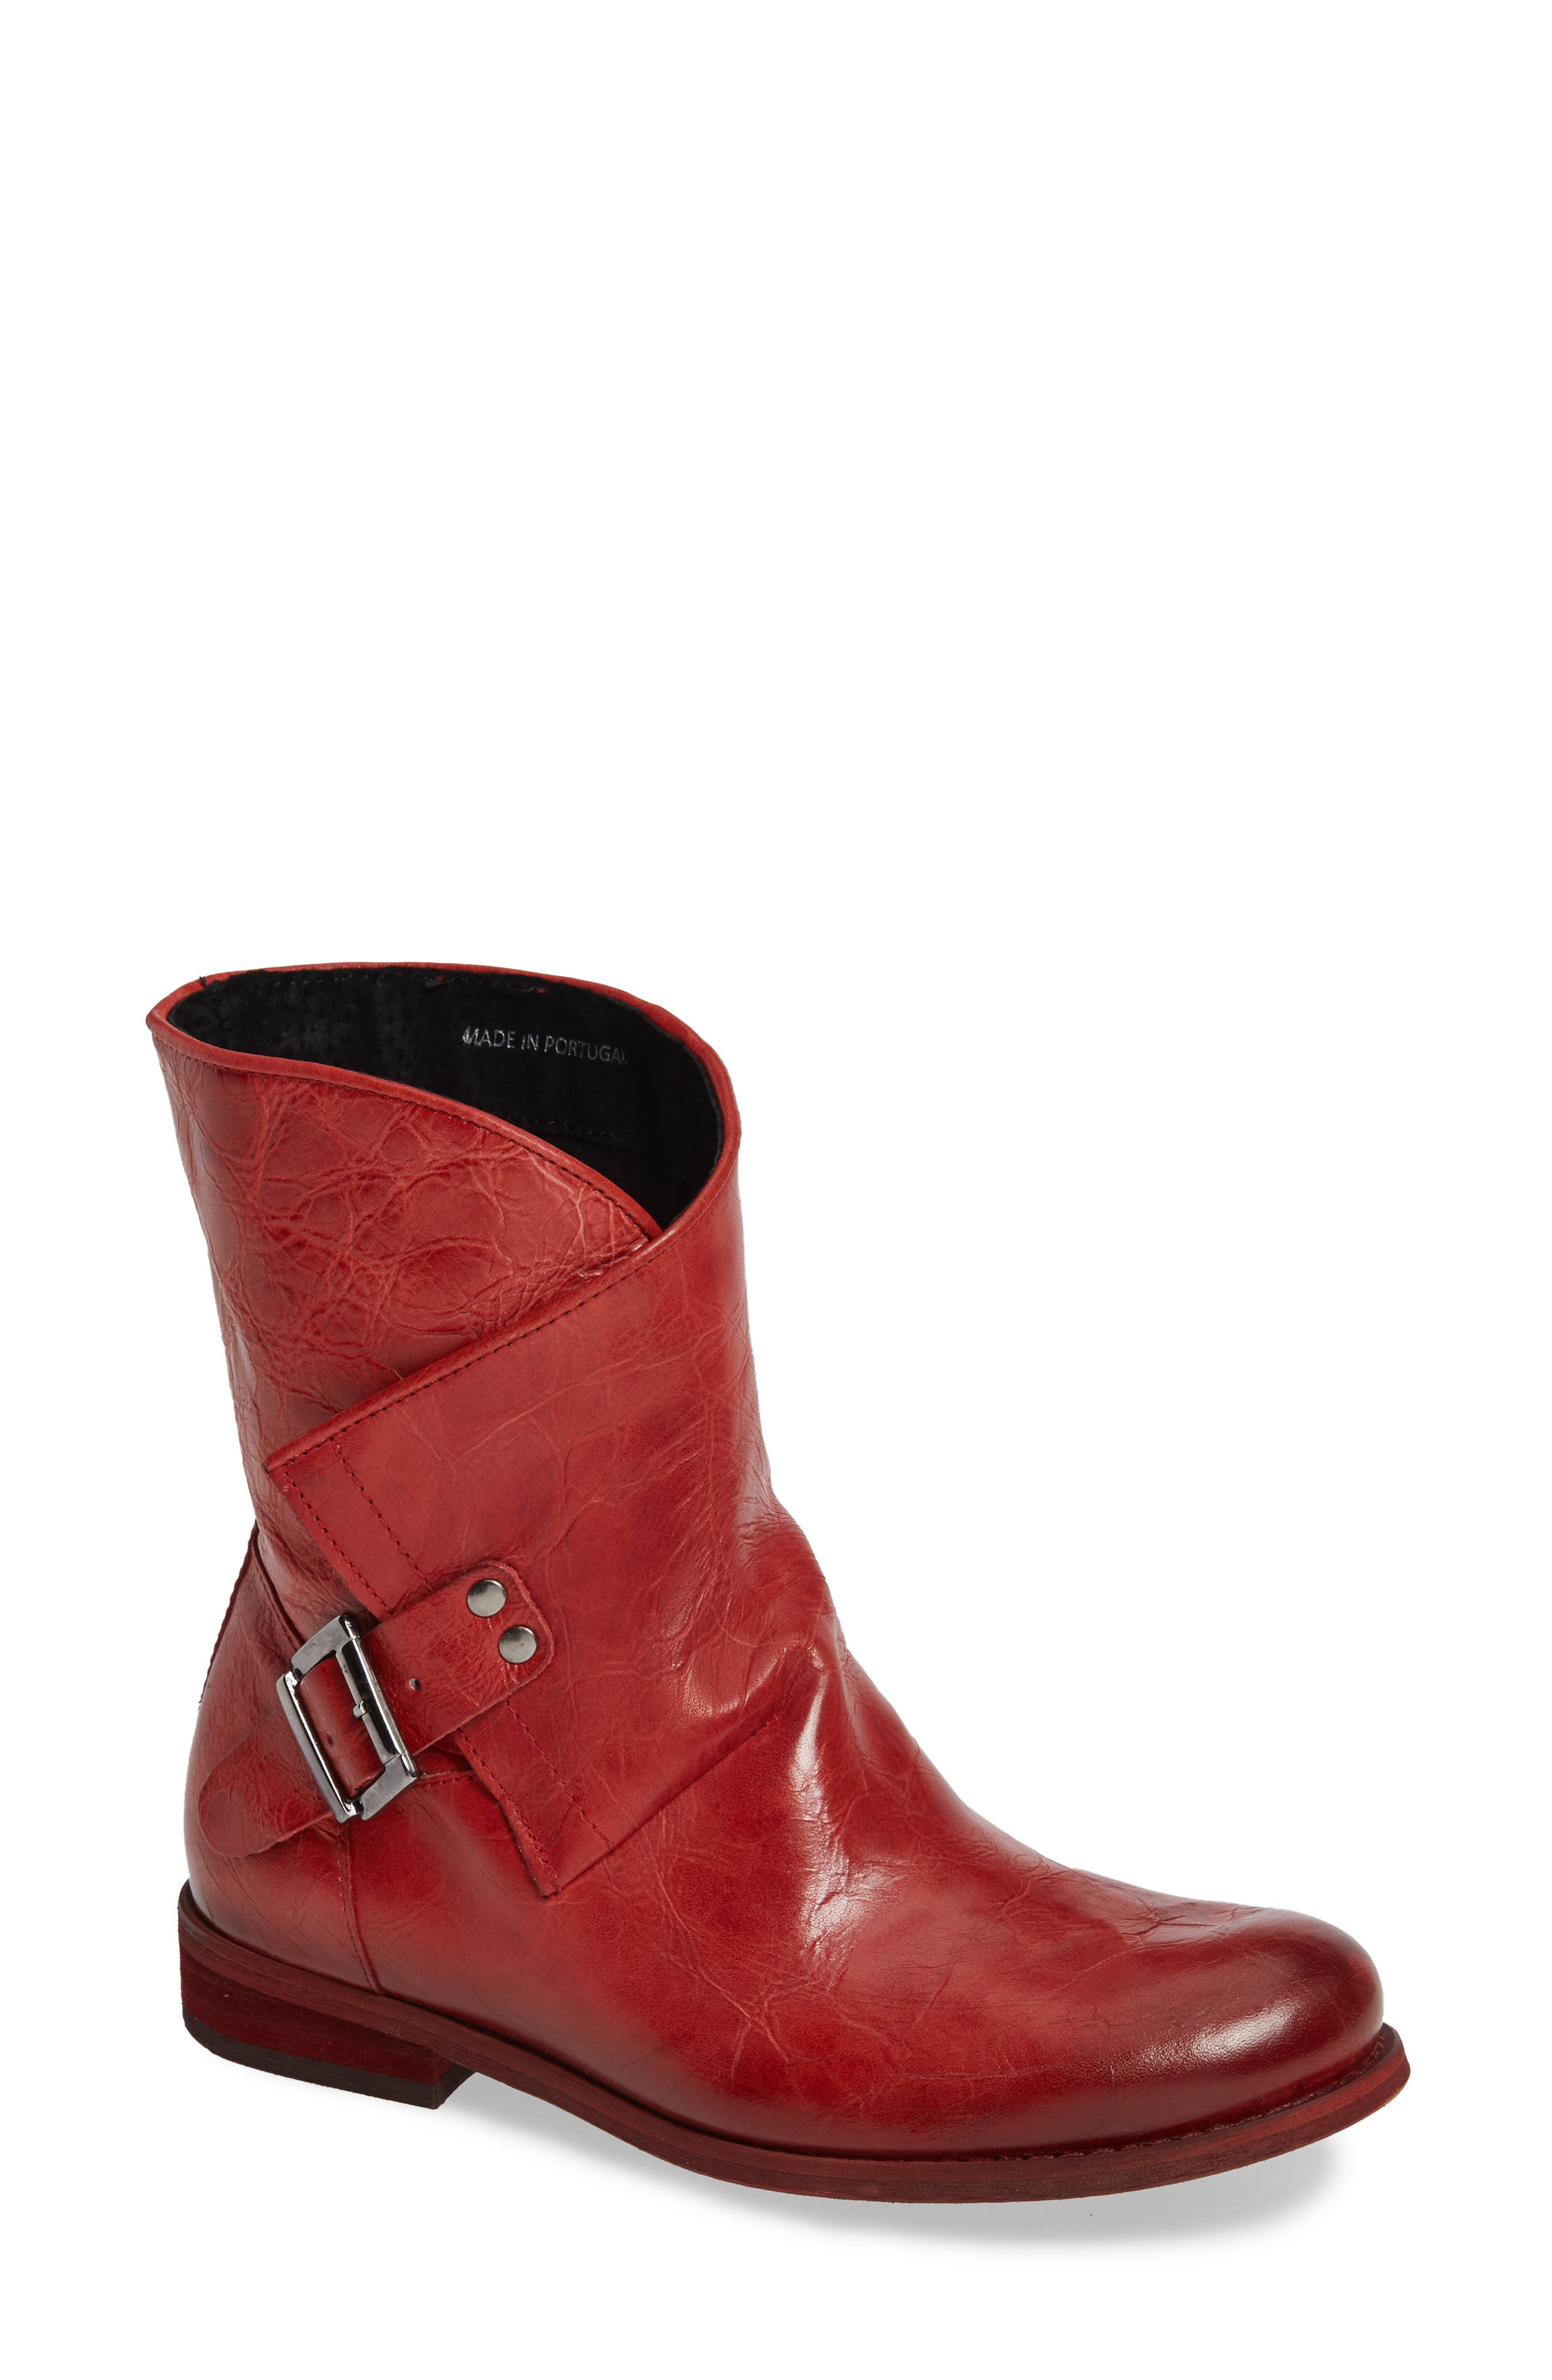 Sheridan Mia Casey Bootie, Red